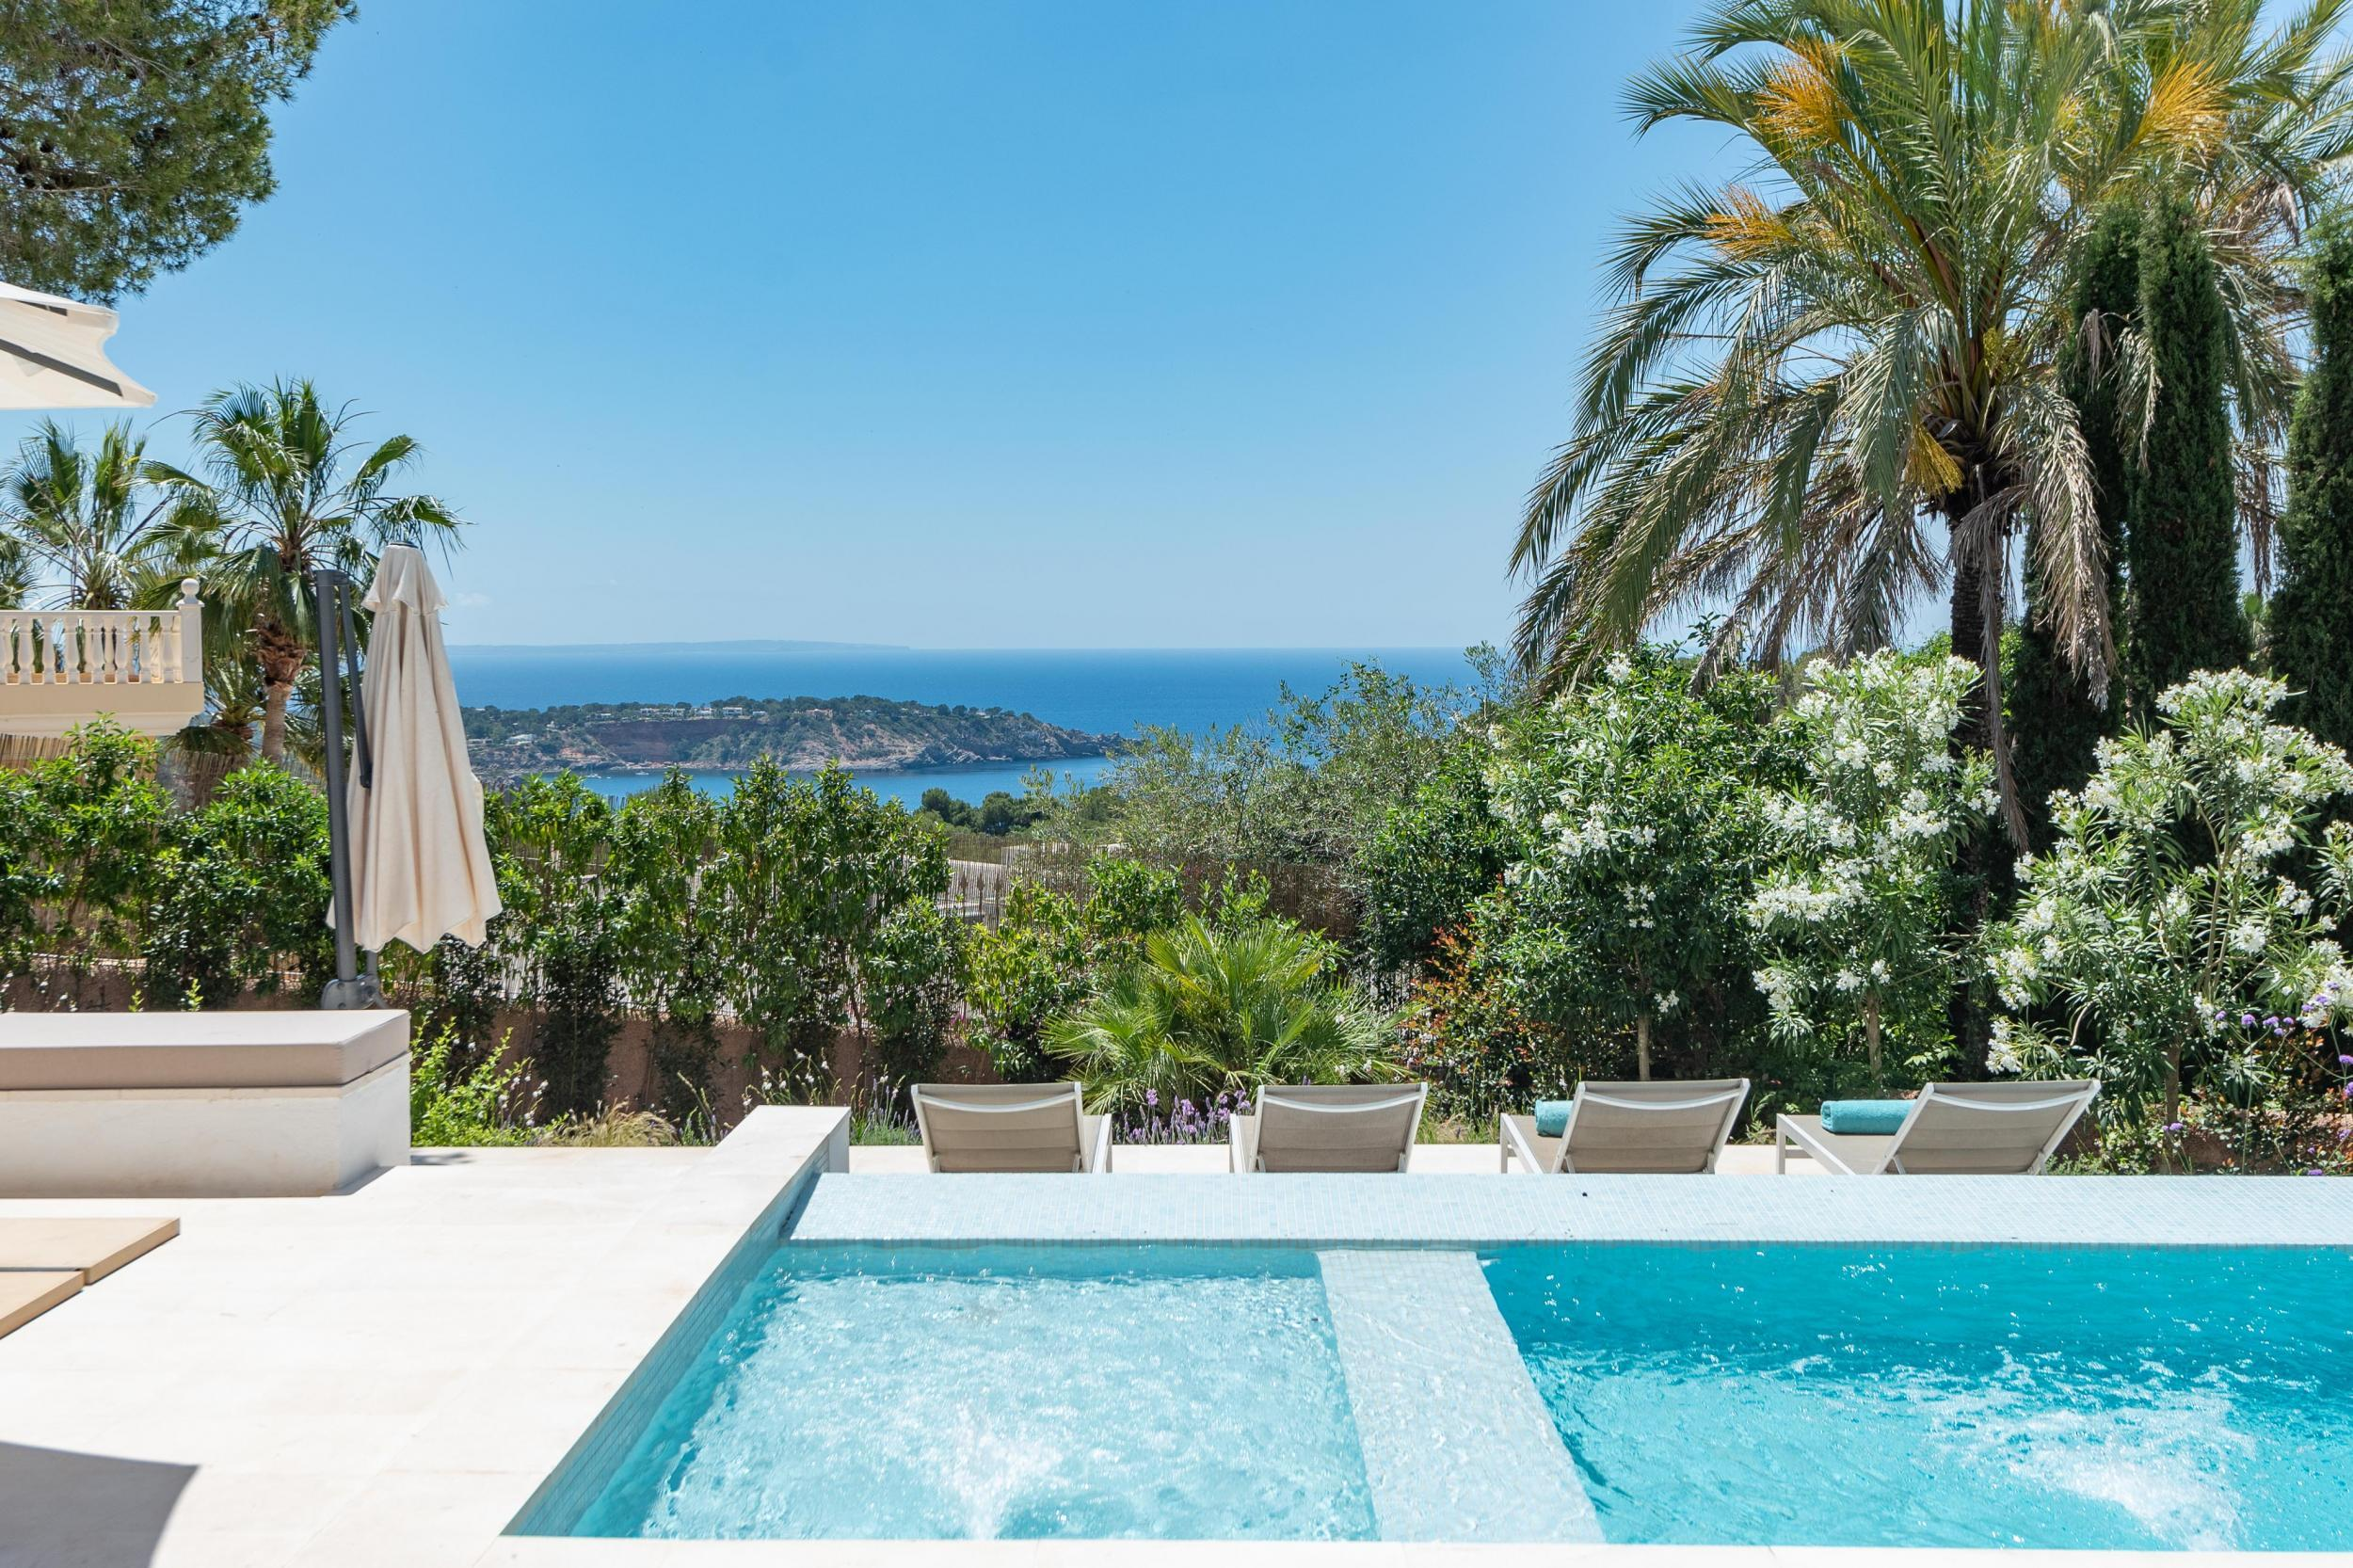 2020 Annual Ibiza Property Market Report and 2021 Forecast